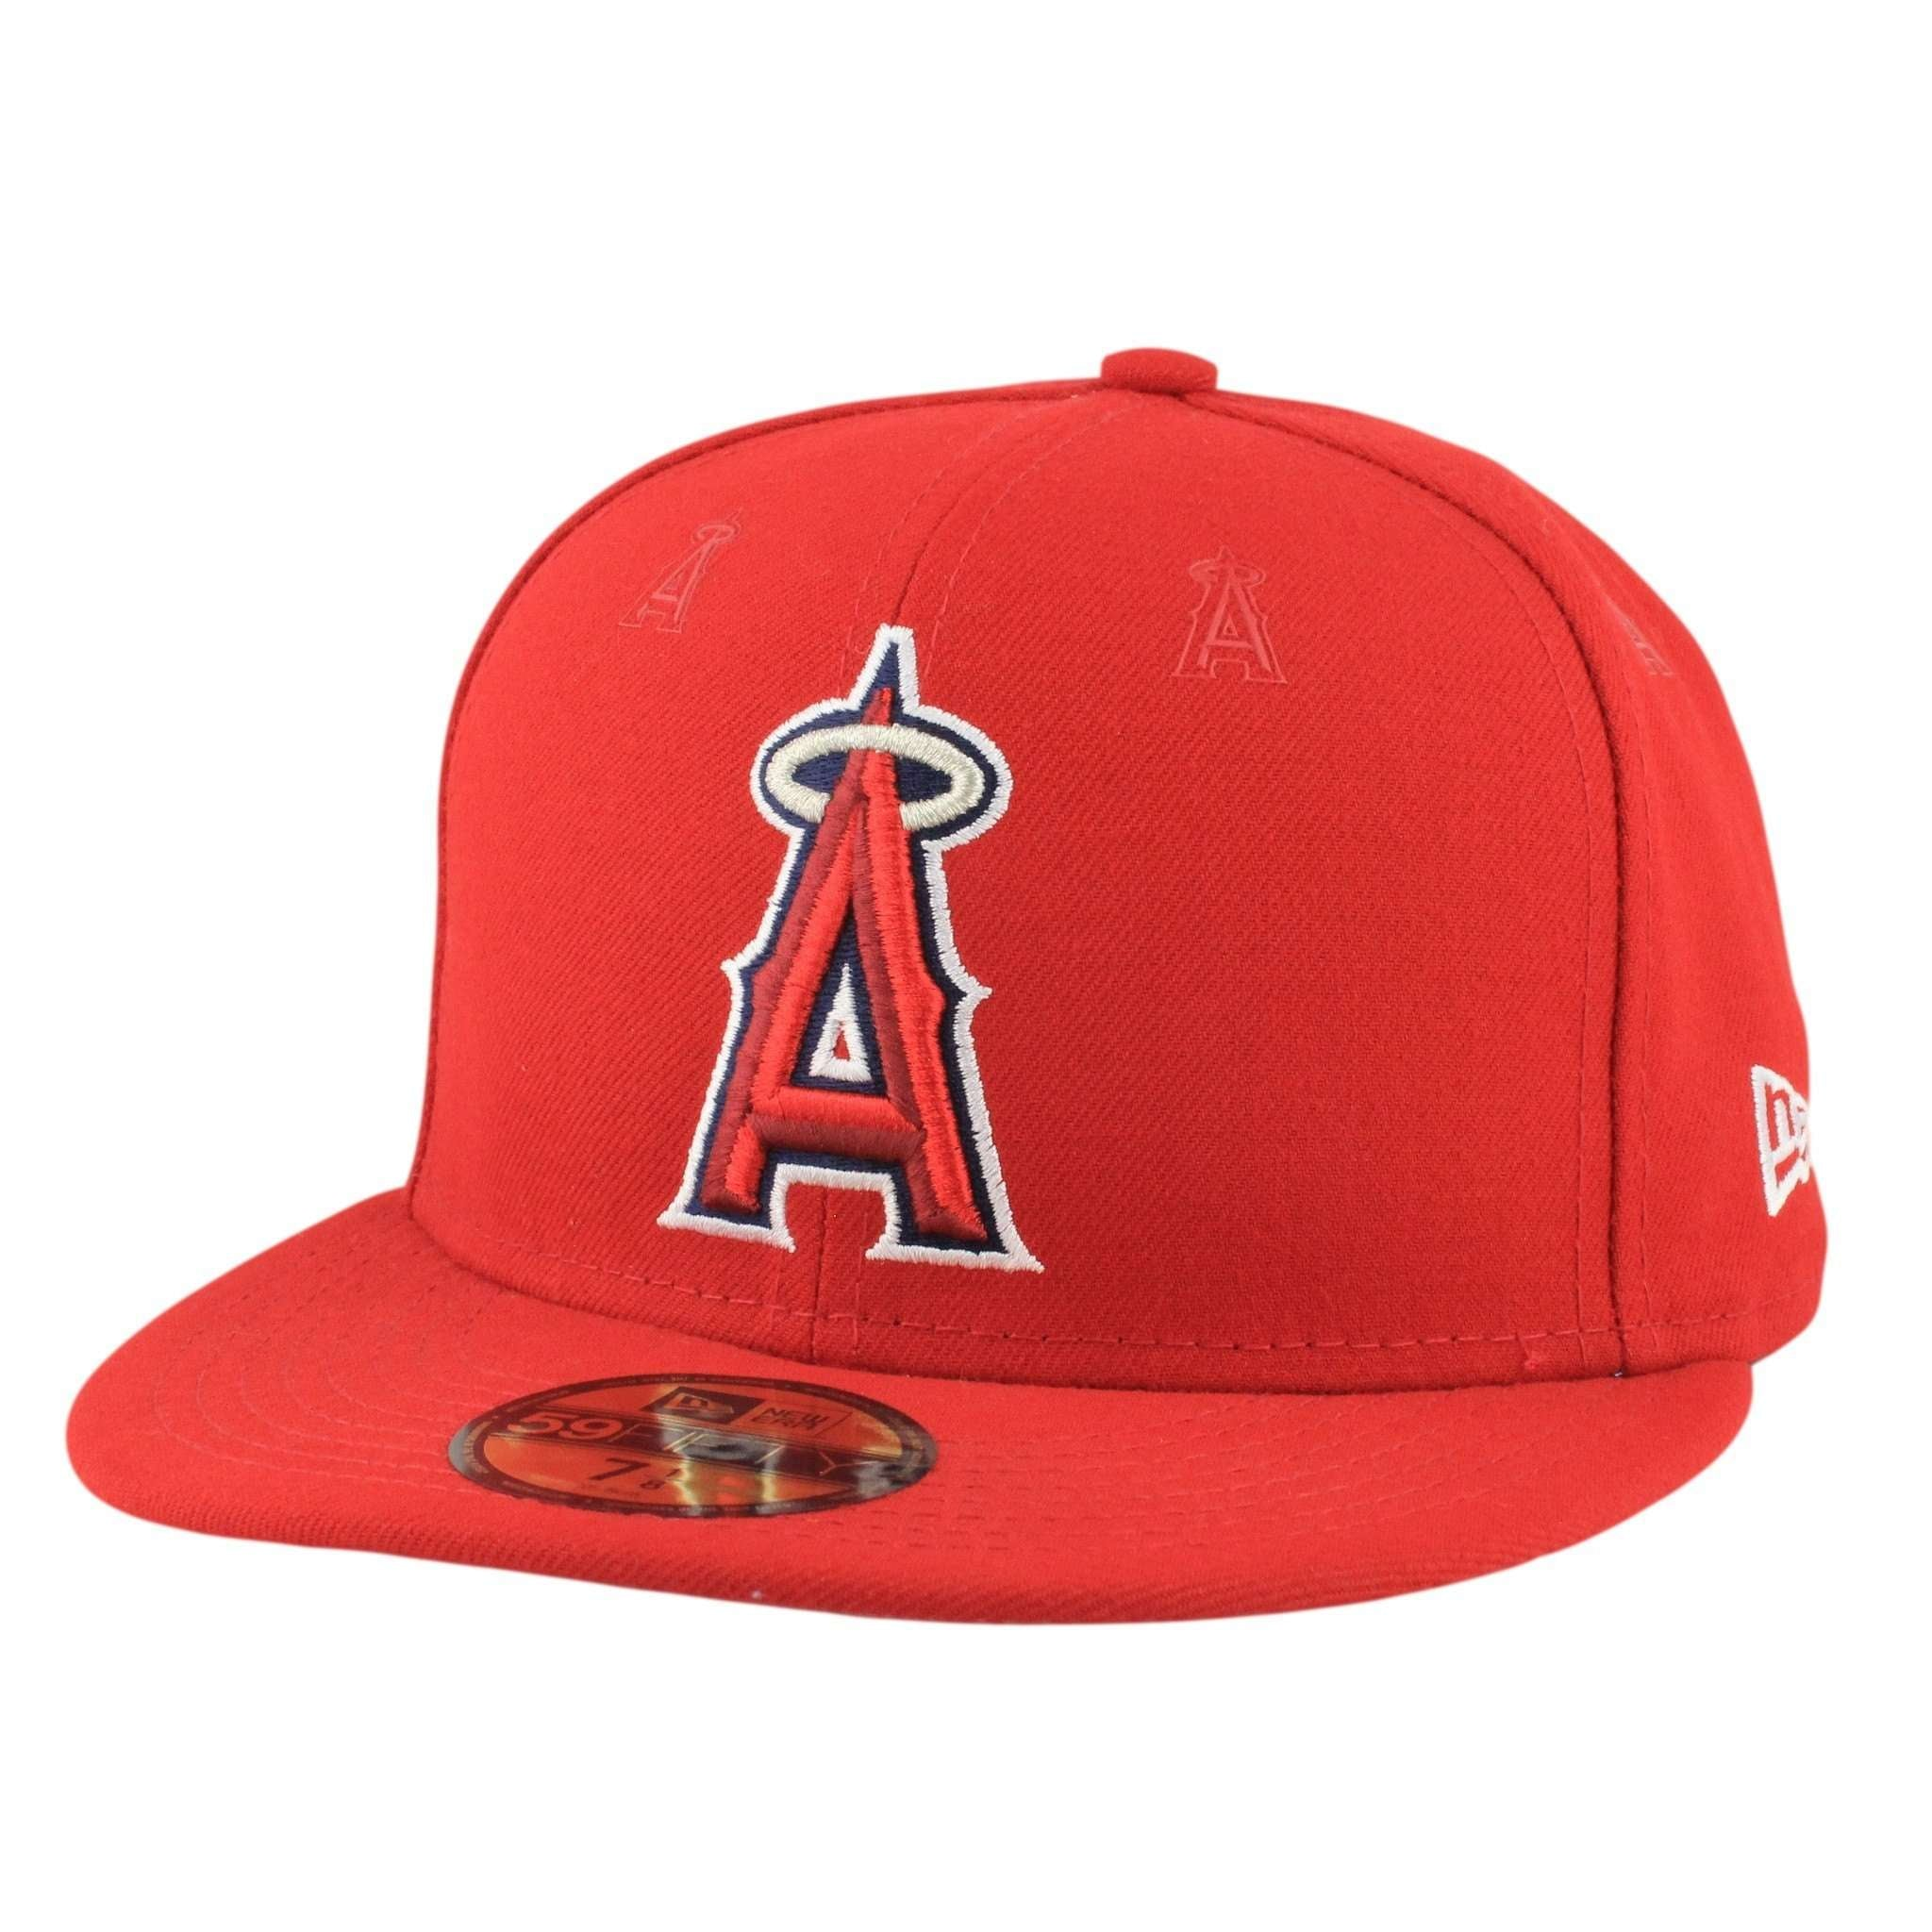 55e6322f2 Los Angeles Angels Logo Repeat Red Red Fitted